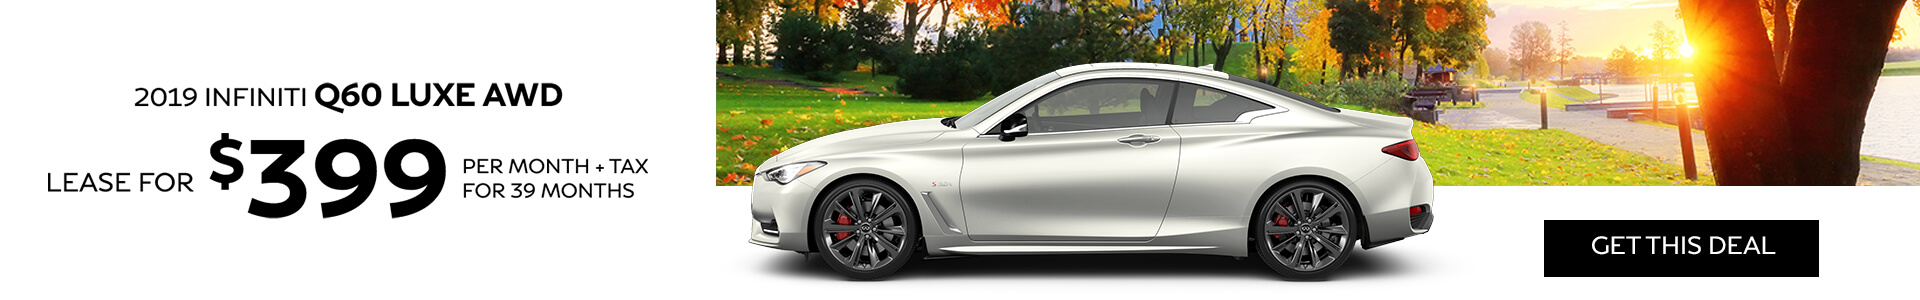 Q60 LUXE - Lease for 399